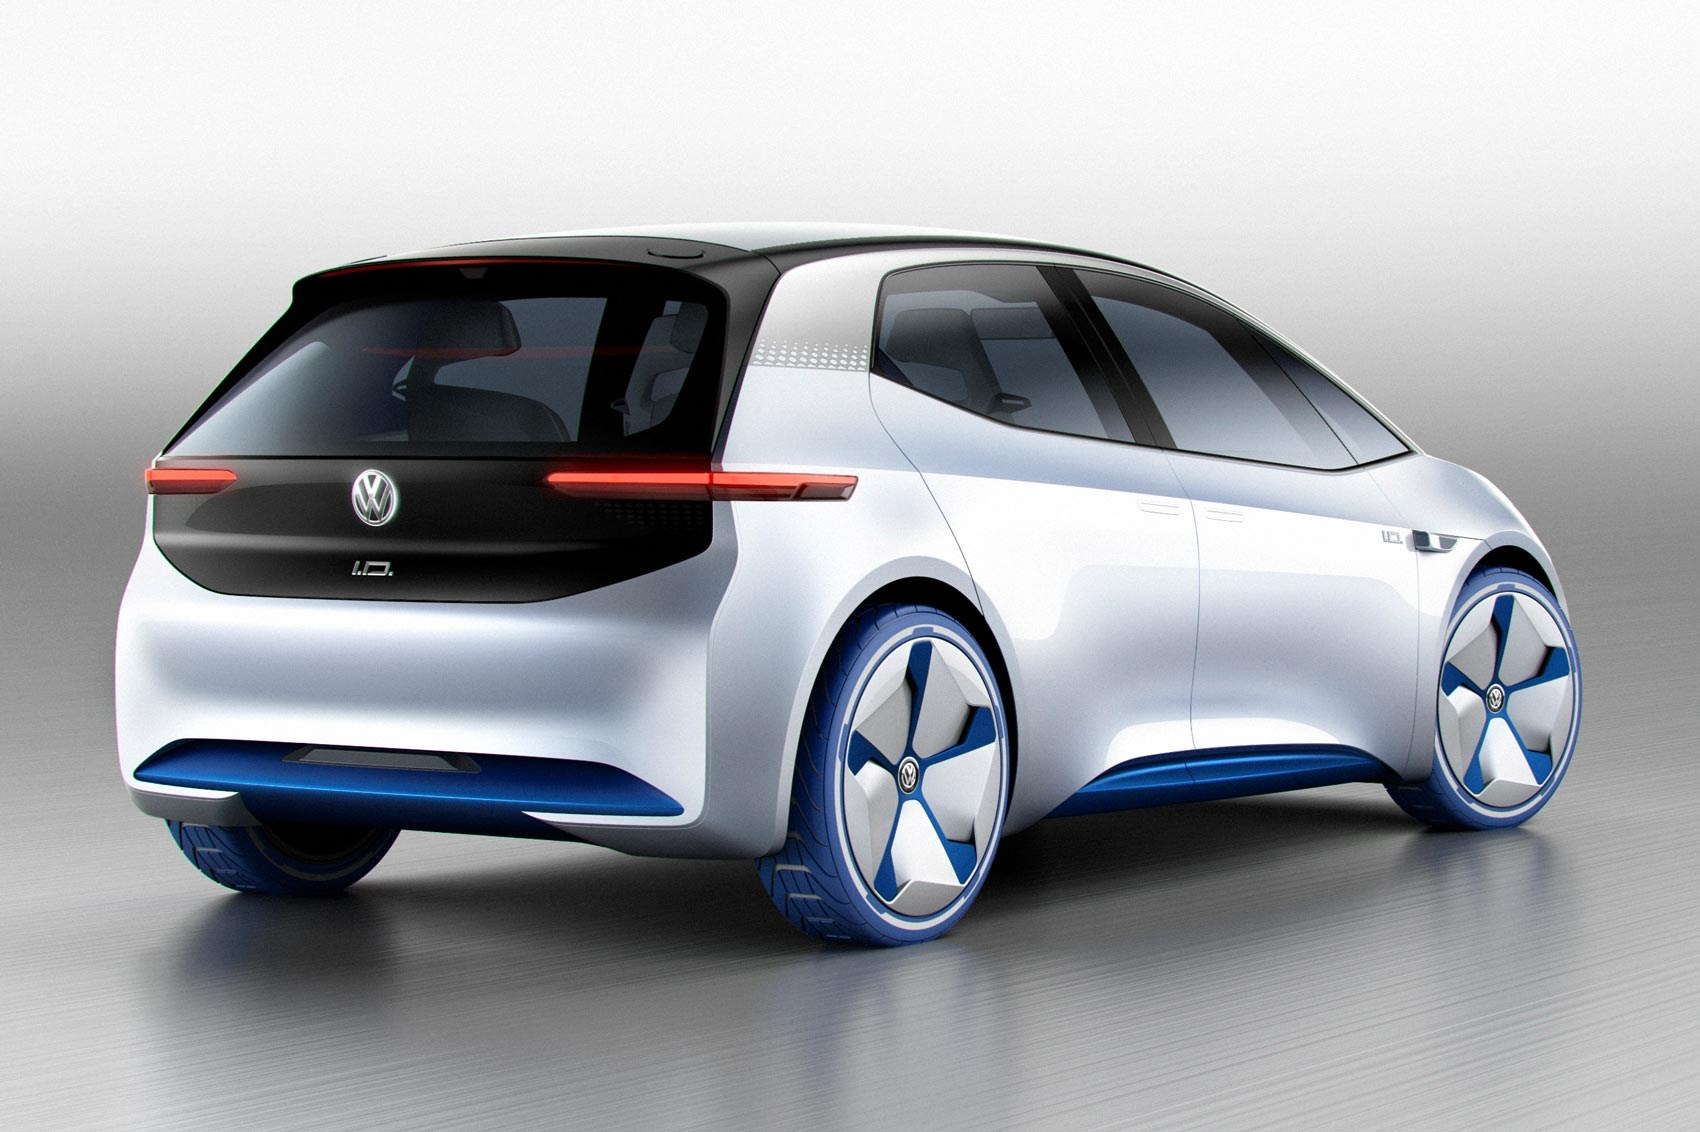 visionary i d heralds vw s all electric future by car magazine. Black Bedroom Furniture Sets. Home Design Ideas